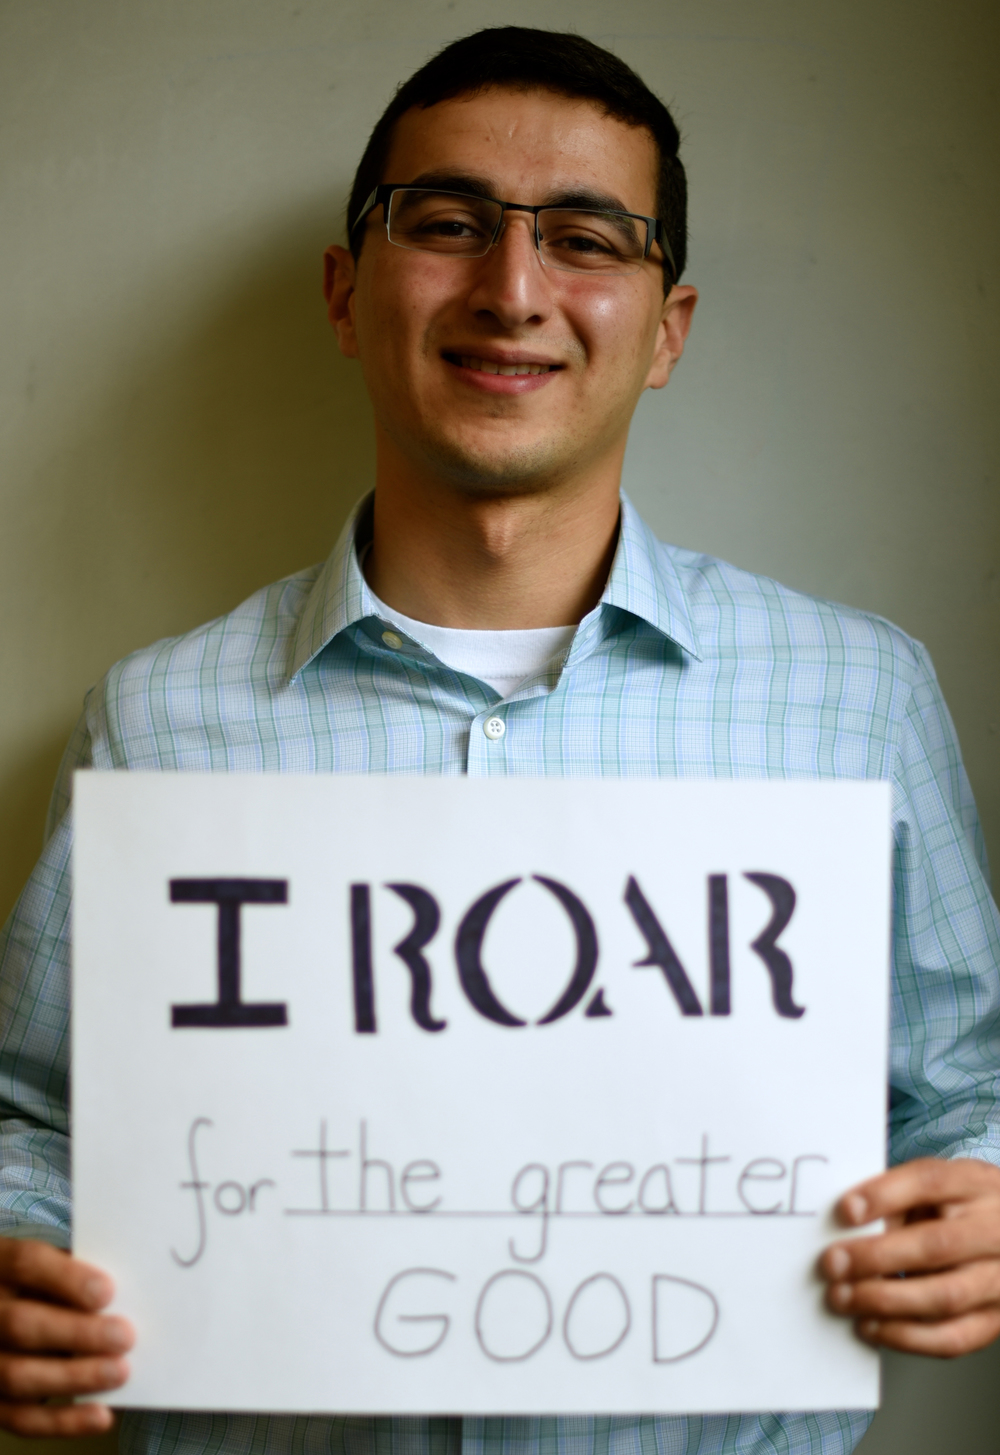 Mahmoud Mustafa has a background in finance and data analytics - but considers himself a lifelong student of technology. Having previously worked for a VC-backed startup in the Philly area, he discovered his passion for innovative products and solutions. The challenges around building an idea, scaling a product, and ultimately solving a problem are what excite him most about ROAR. The top item on his bucket list: going to Mars (after he visits the rest of Earth!)